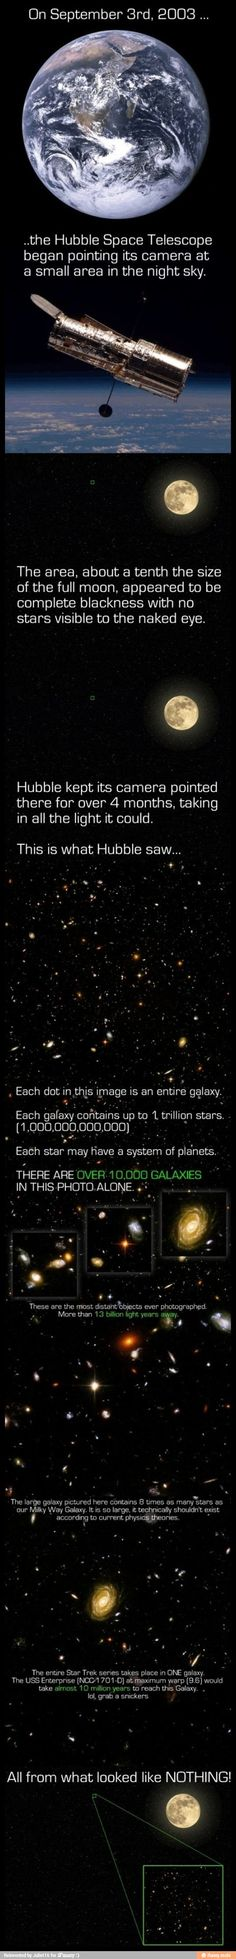 Woah...space is crazy!